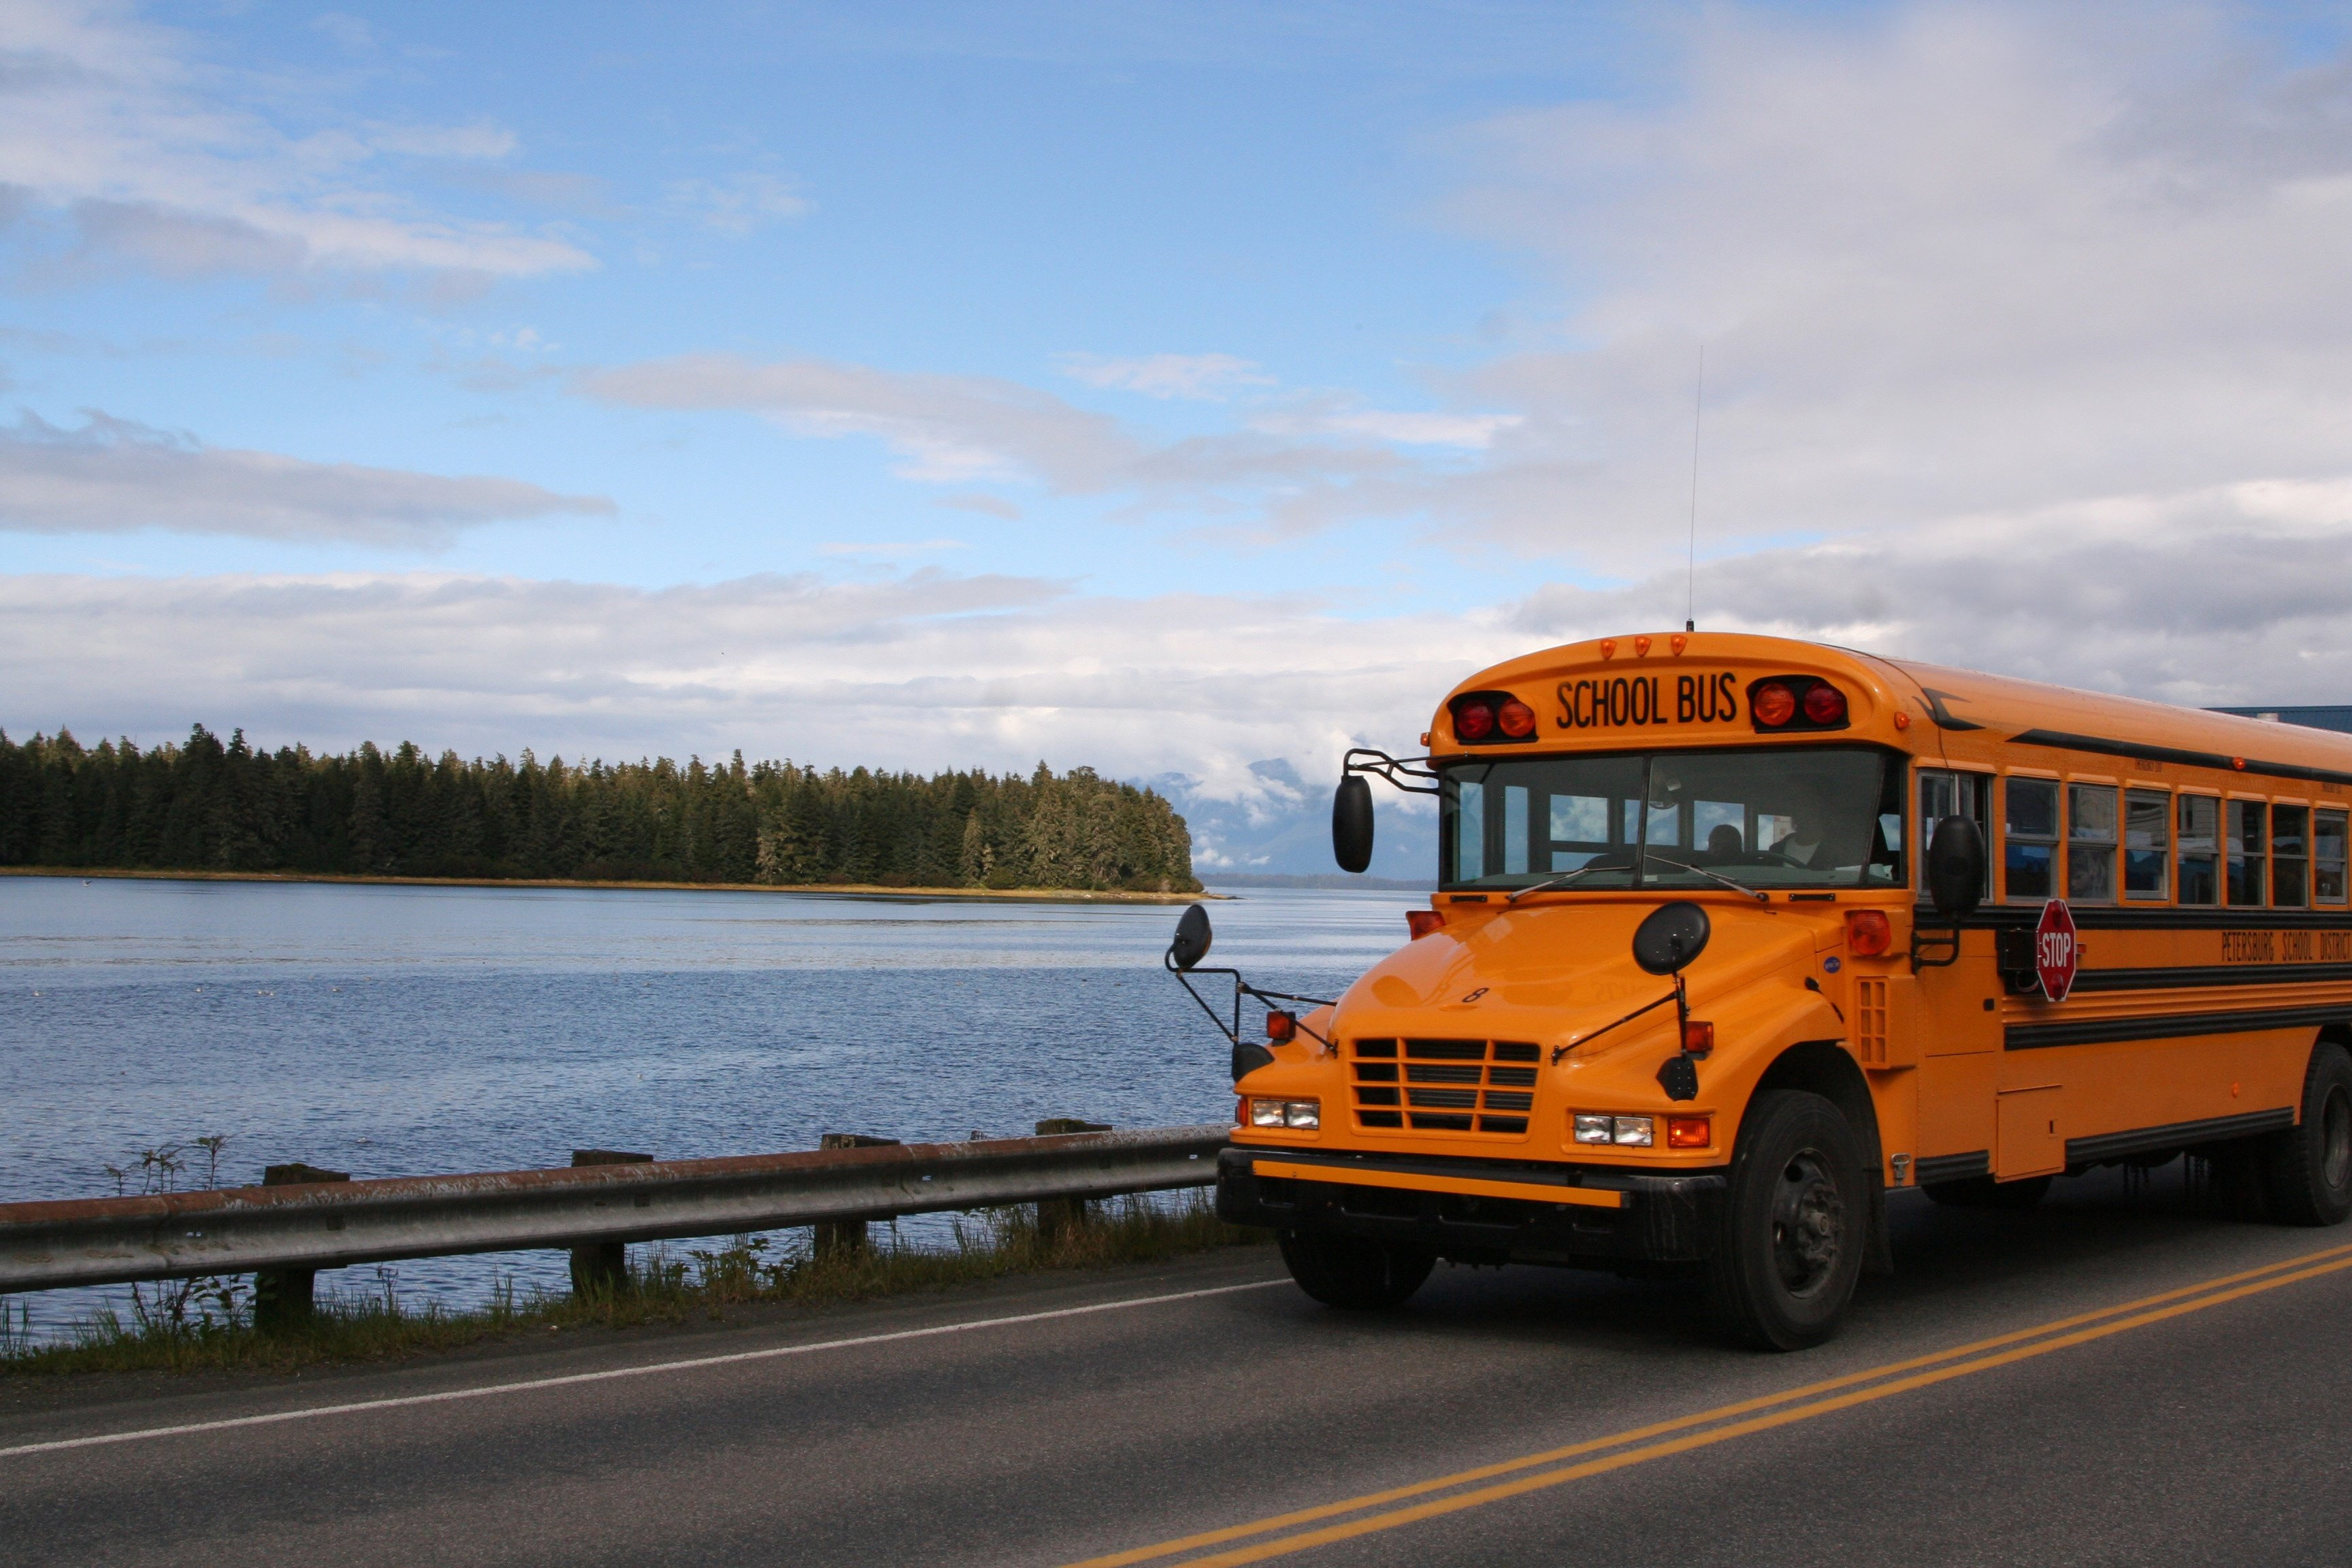 School-Bus-in-an-Article-About-The-National-Institute-of-Justice's-Comprehensive-School-Safety-Initiative